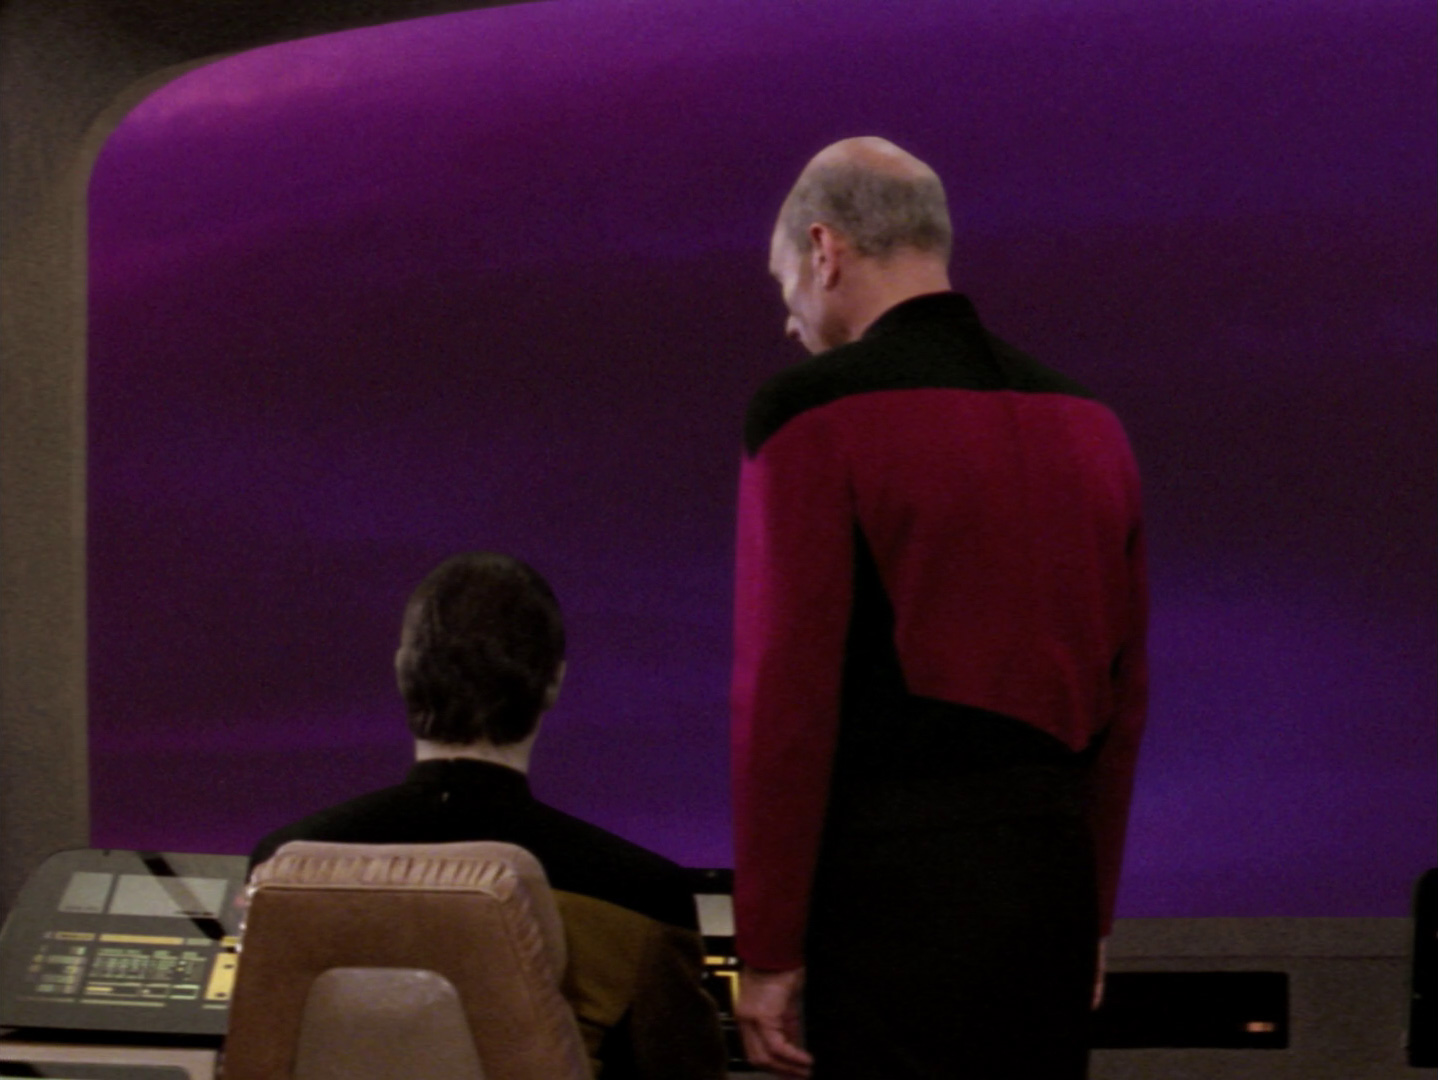 Star Trek: The Next Generation - In den Händen der Borg (The Best Of Both Worlds, 1) Blu-ray Screencap © CBS/Paramount